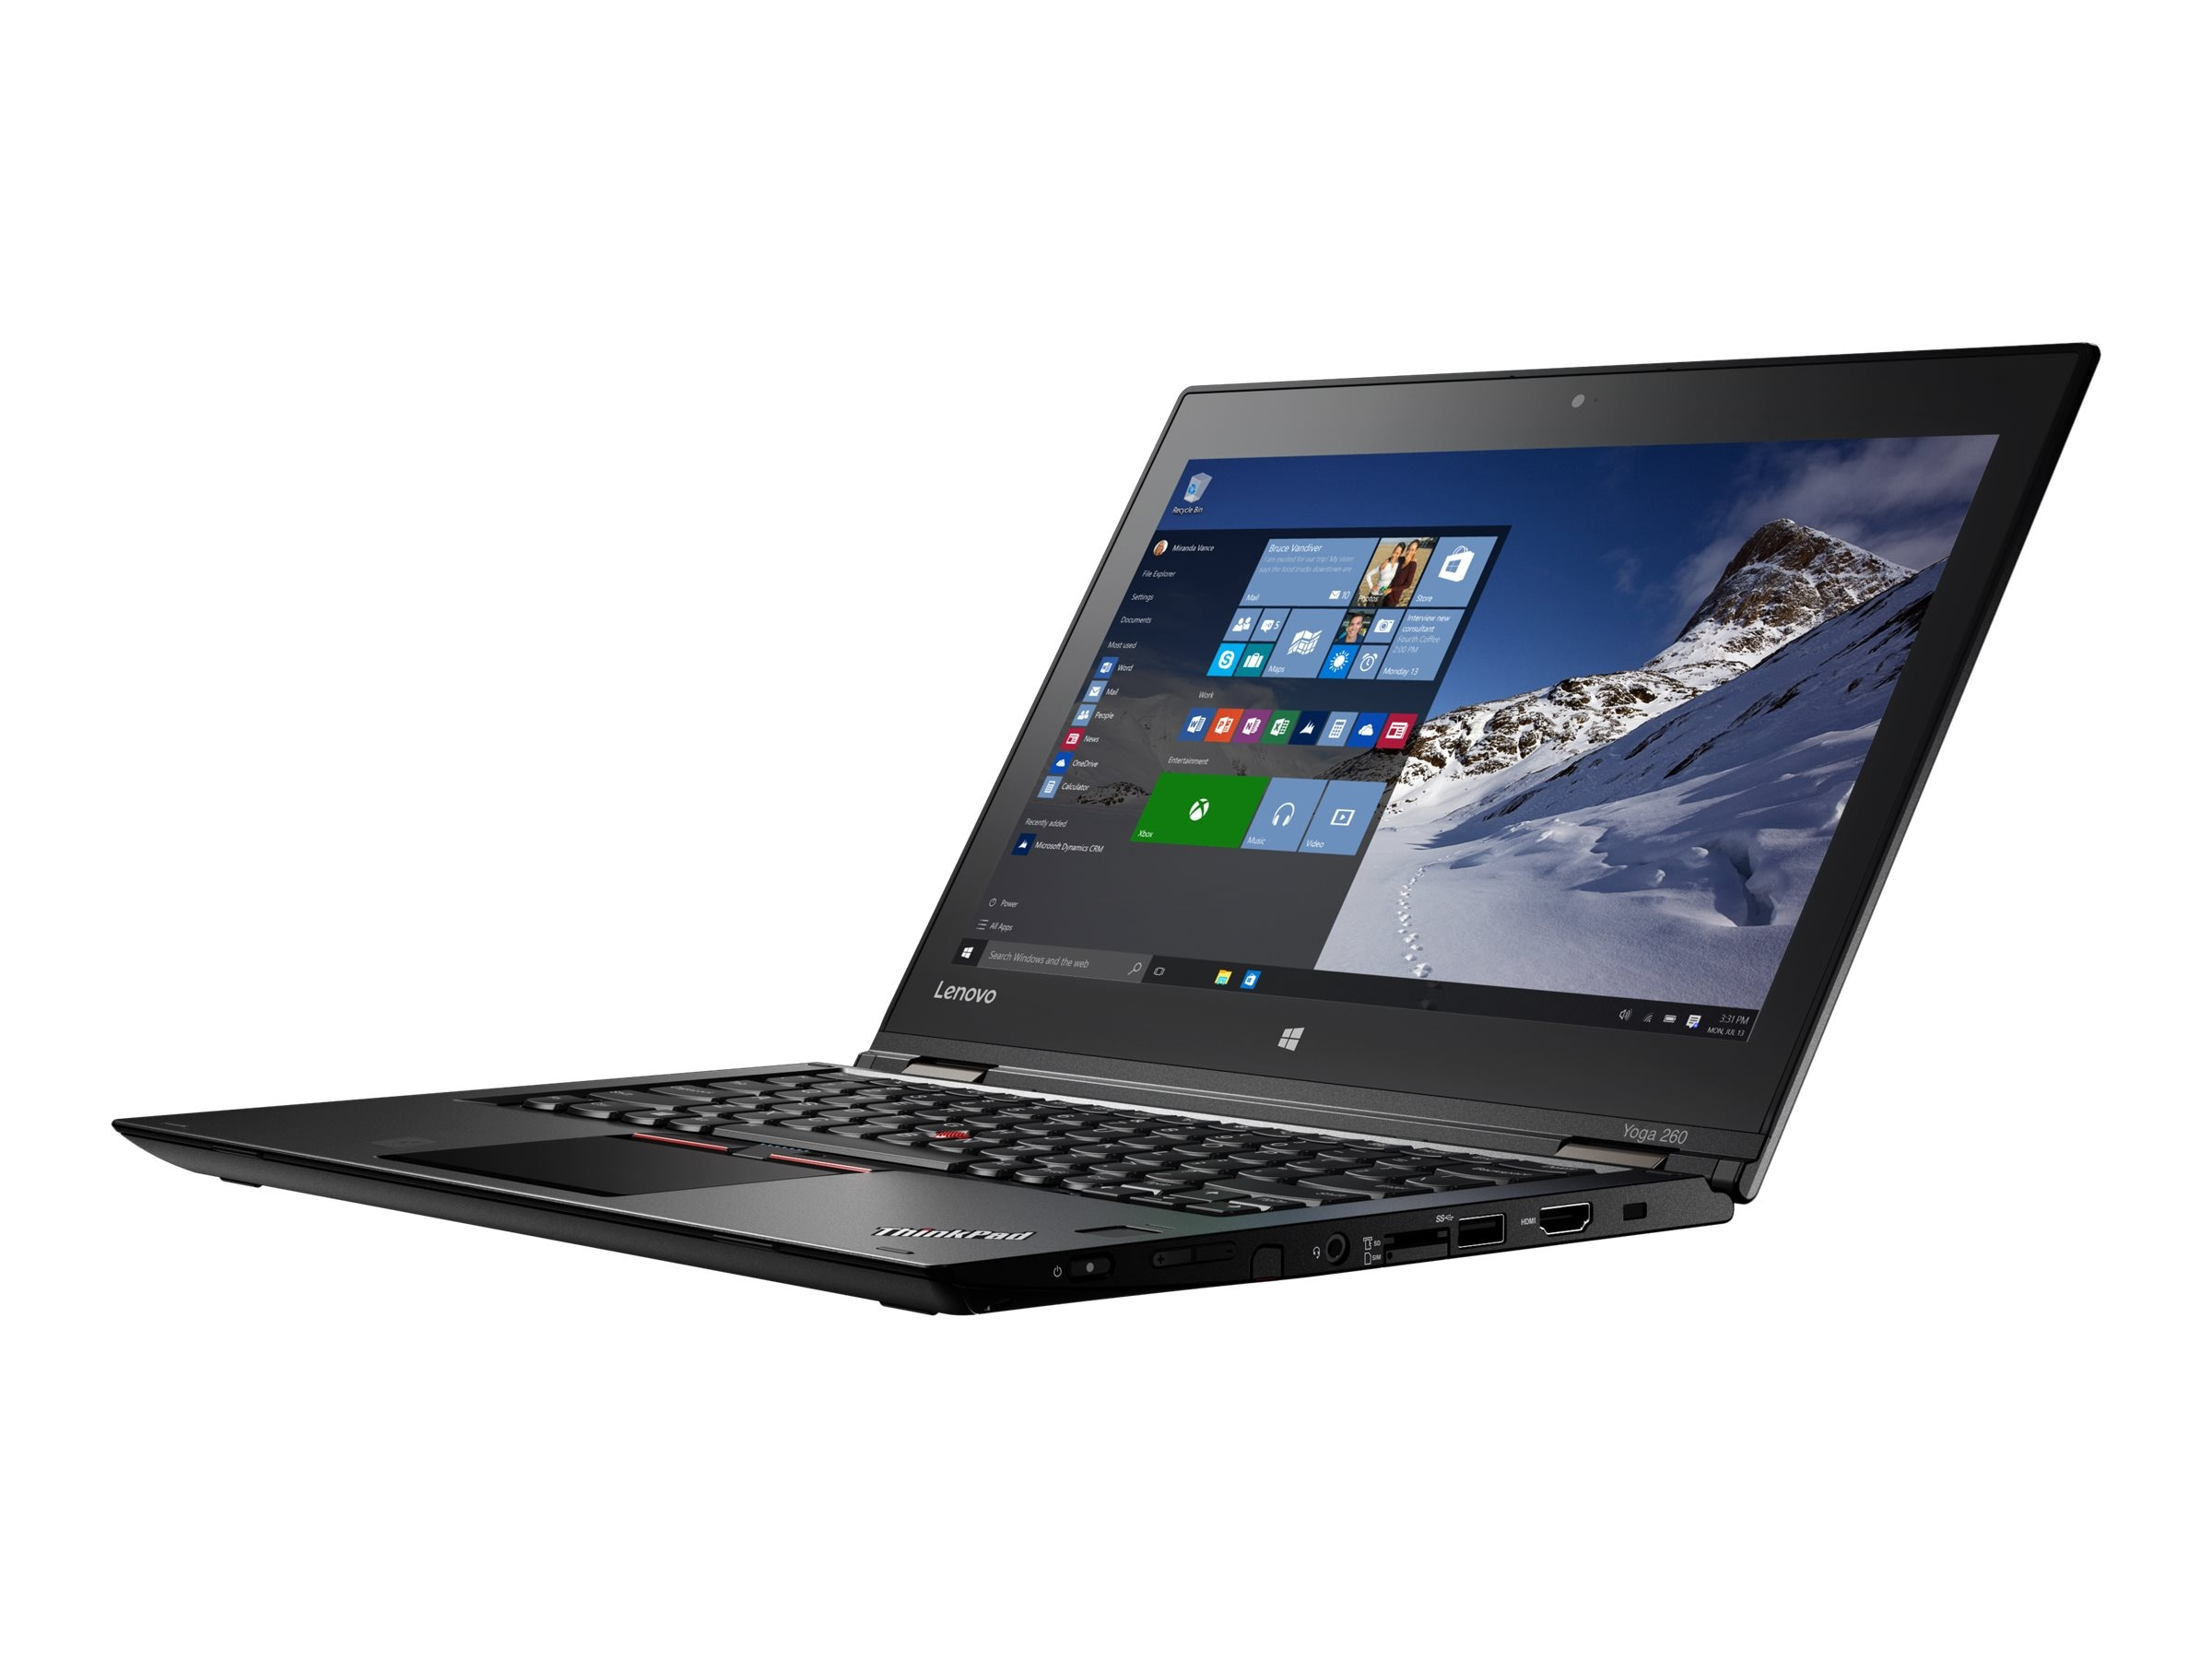 Lenovo TopSeller ThinkPad Yoga 260 Core i7-6500U 2.5GHz 8GB 256GB OPAL2 ac BT WC Pen 4C 12.5 FHD MT W10P64